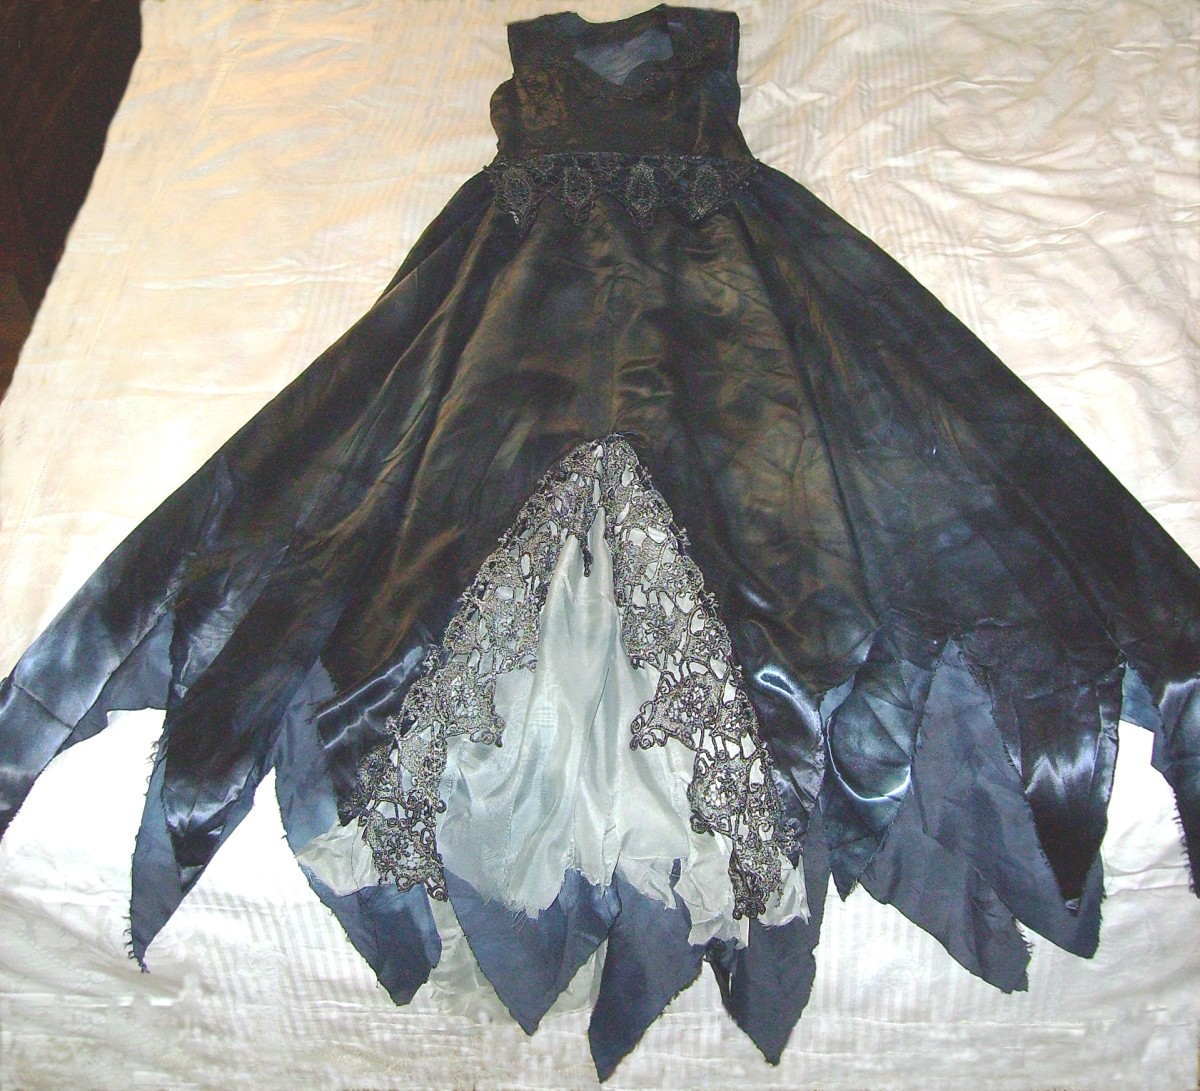 This shows the front bottom of the dress, spread out.